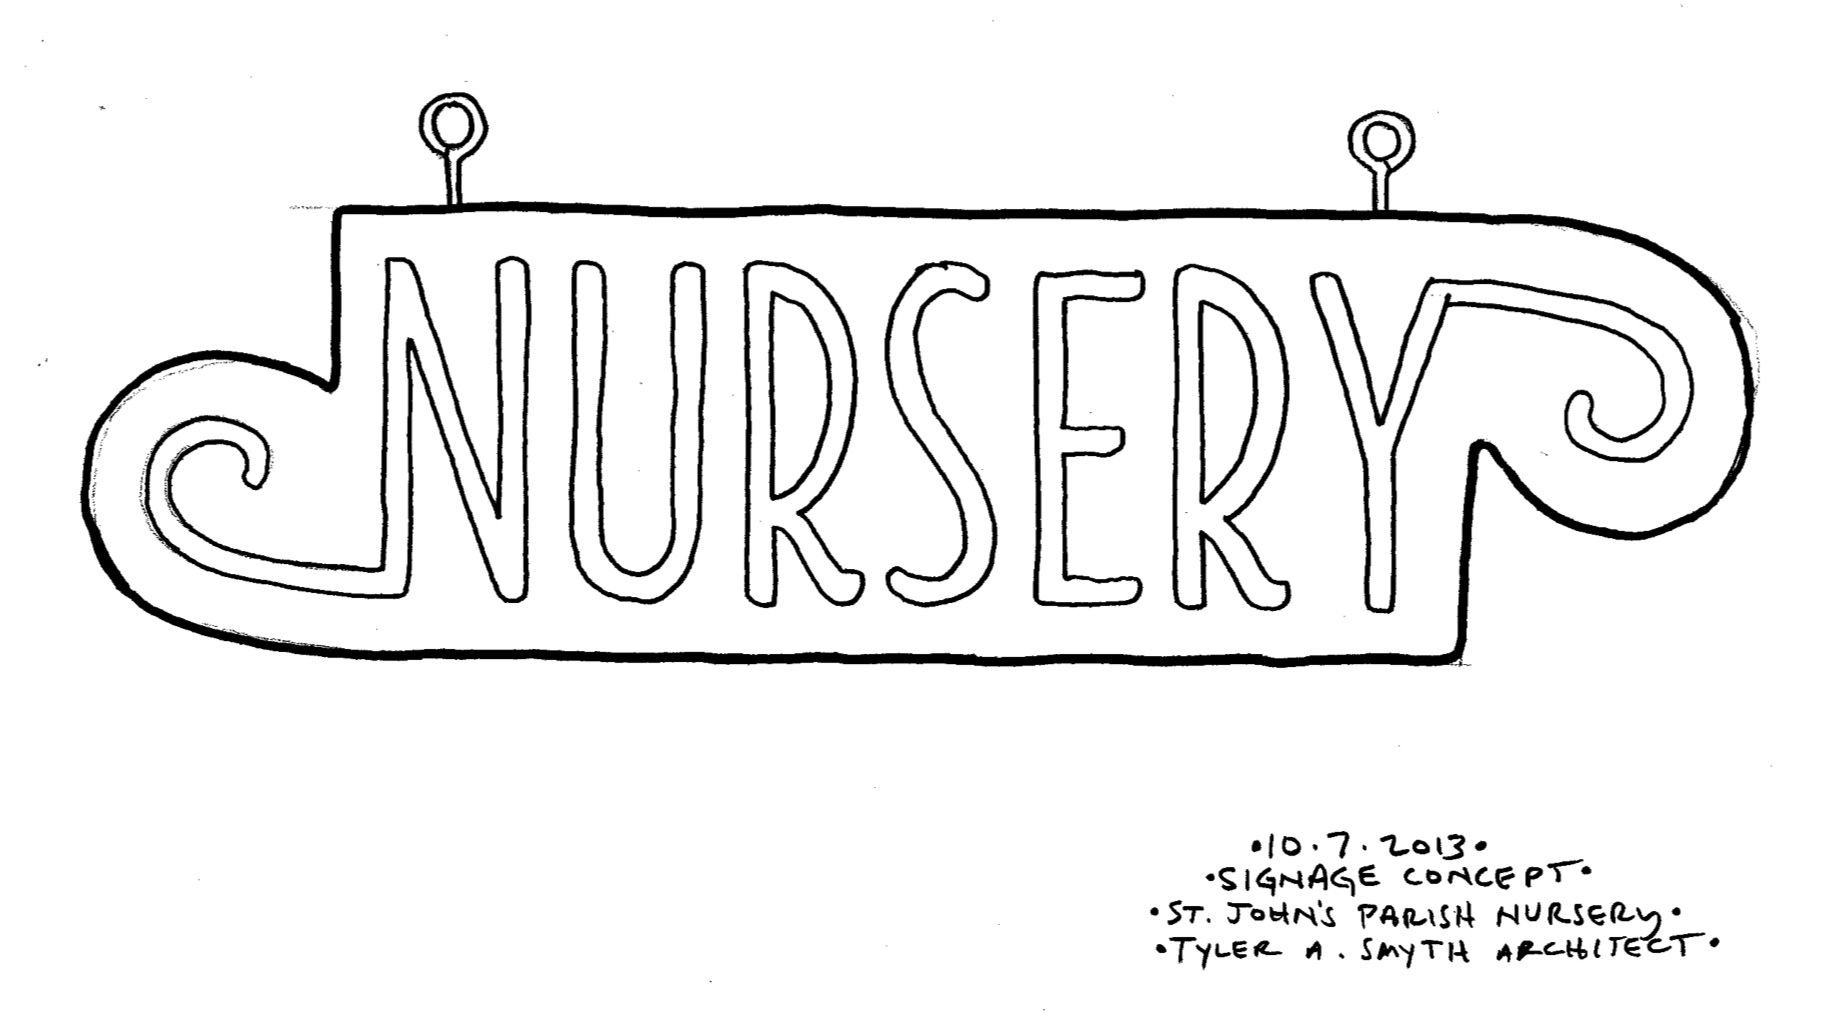 Hanging sign concept for St. John's Parish Church Nursery.